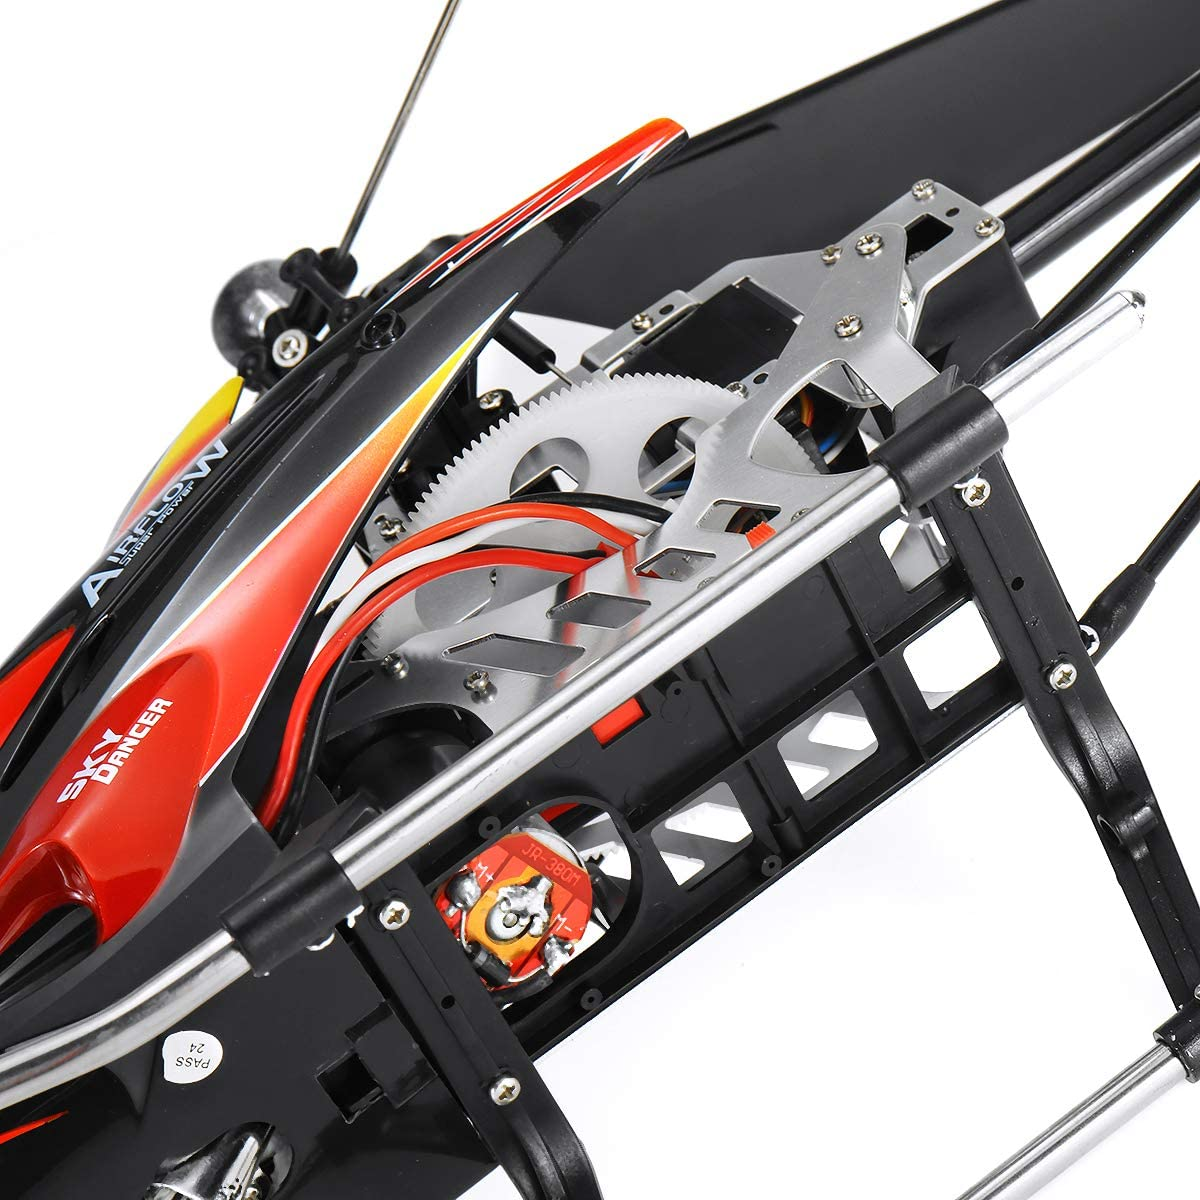 Wltoys V913 Large 27 2.4G 4CH Single Blade Built-in Gyro RC Helicopter RTF